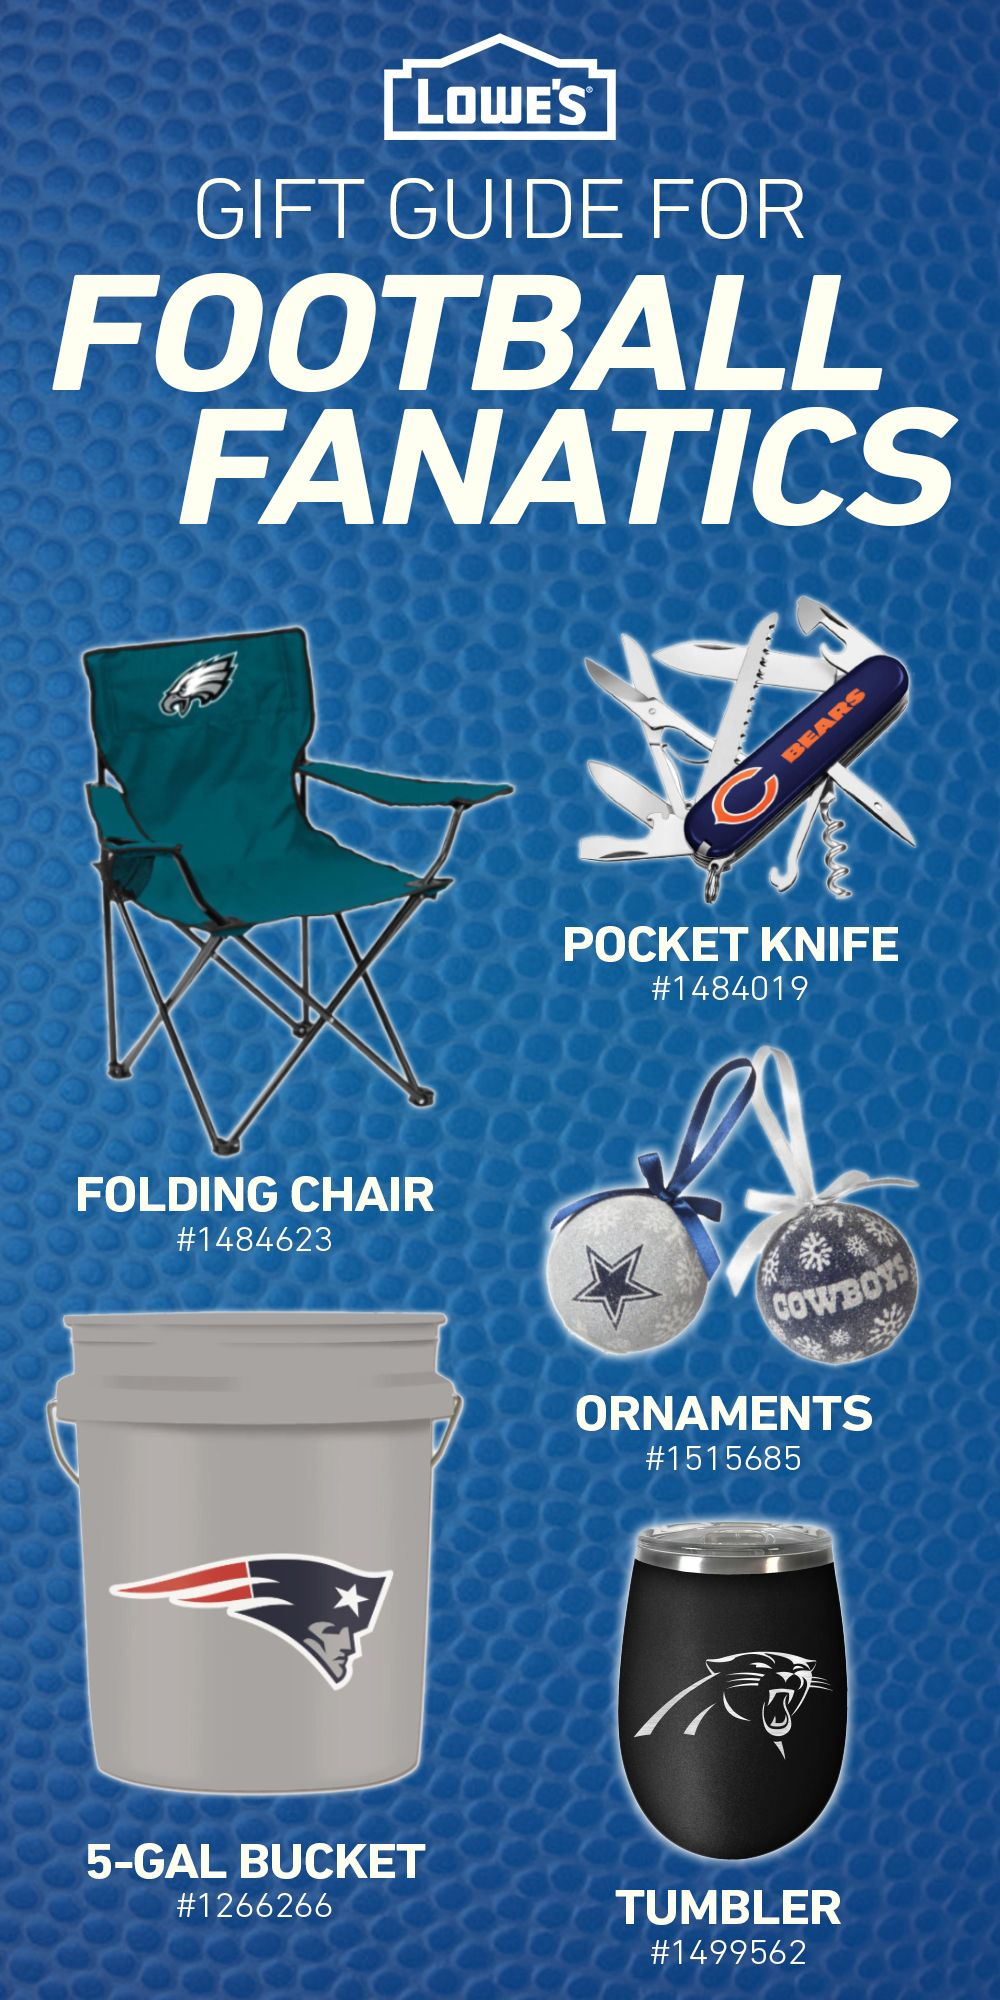 Gifts for Football Lovers